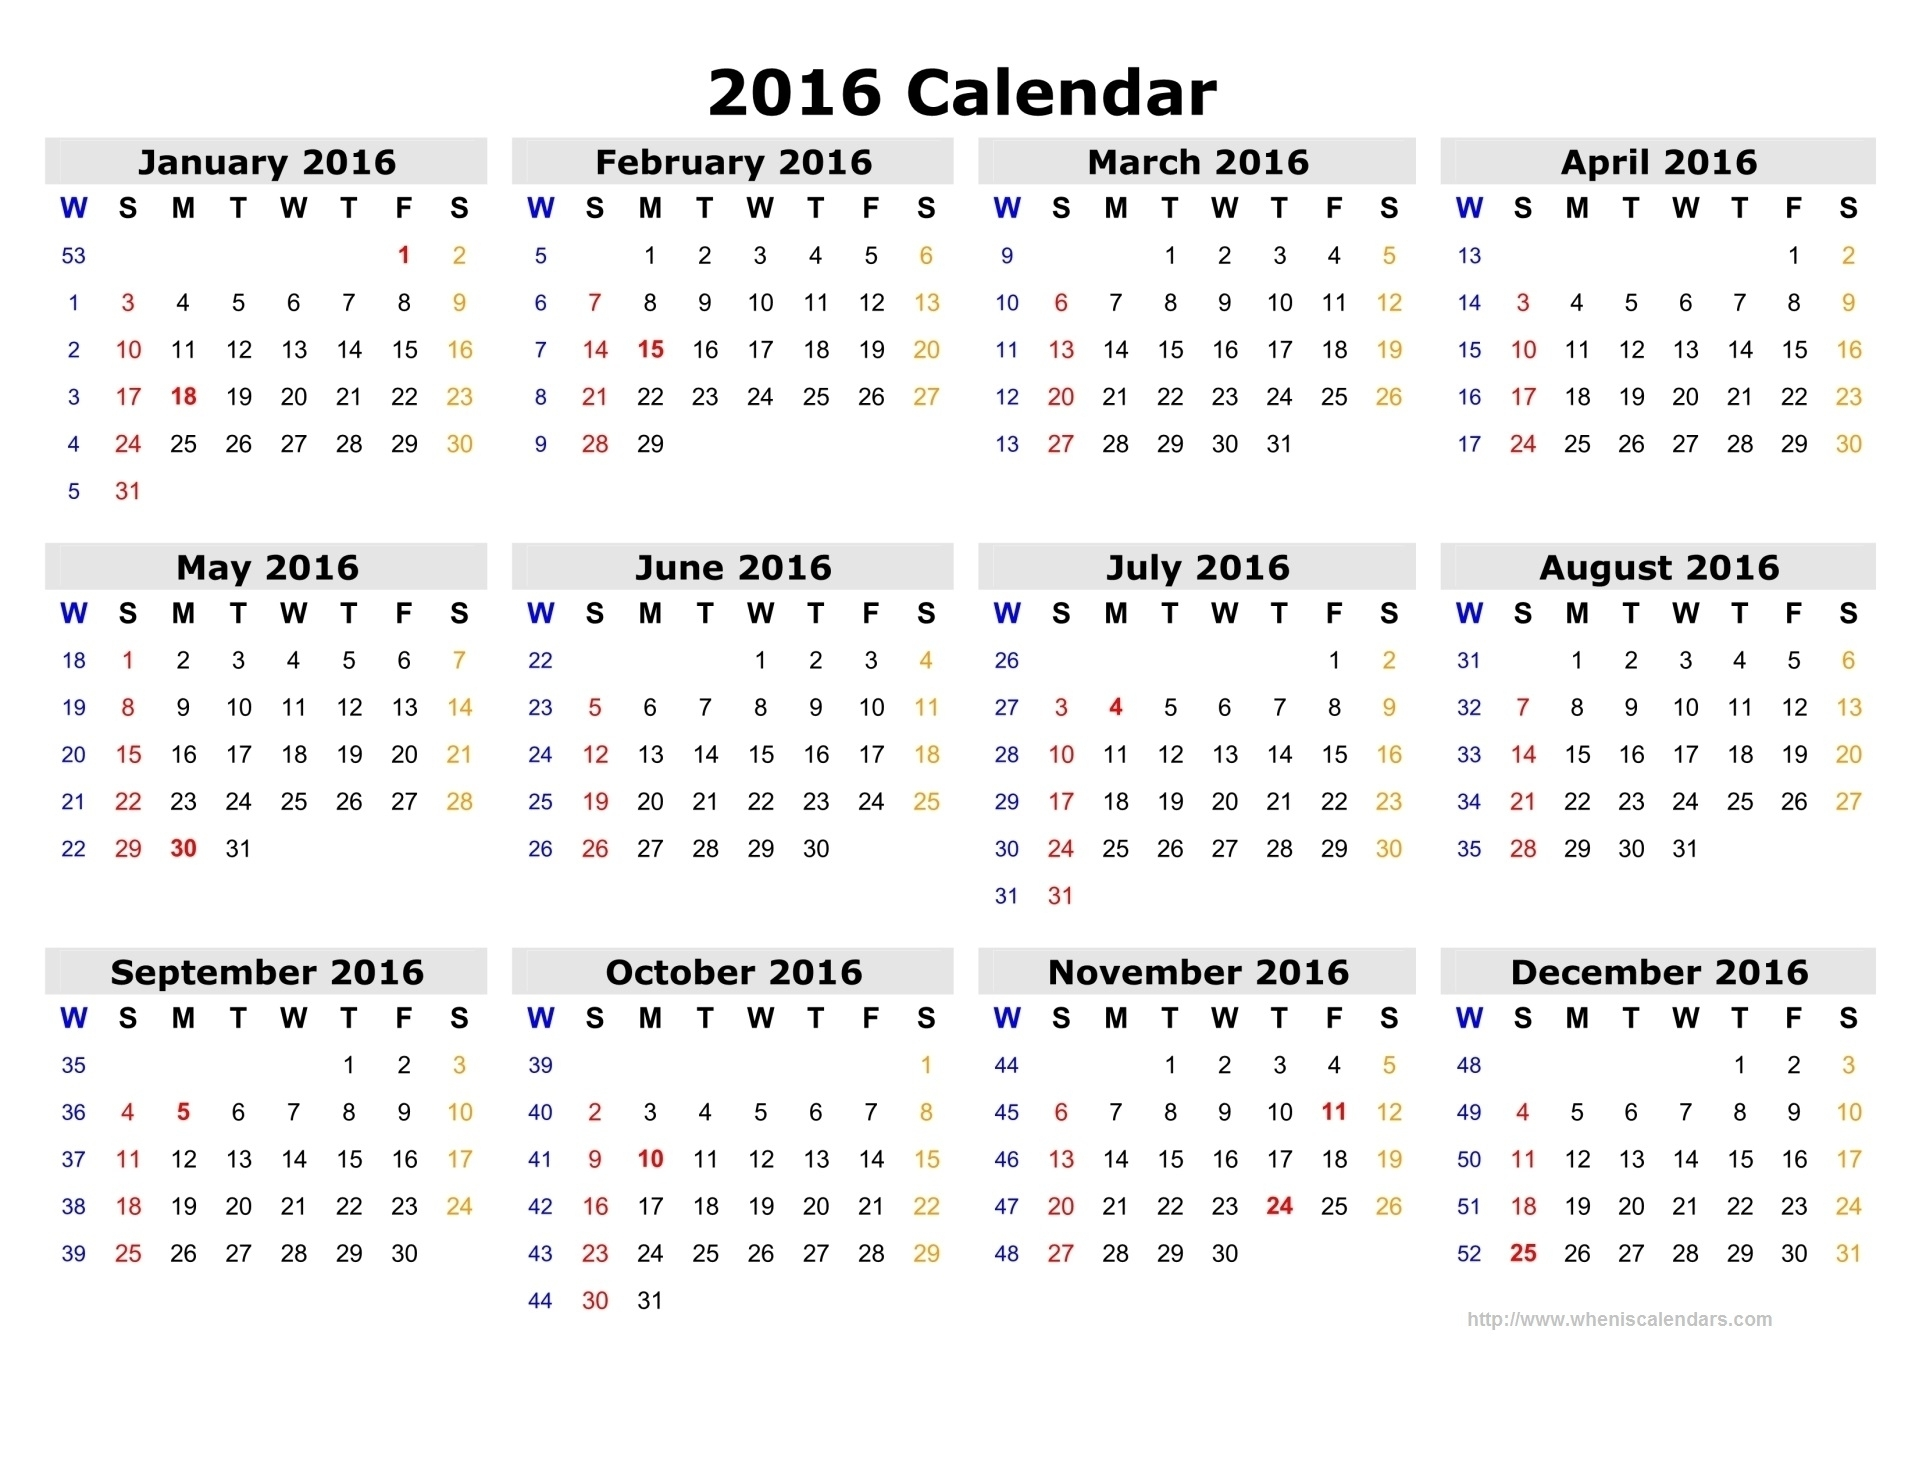 Calendar 2016 12 Months, Indicating Number Weeks 2016